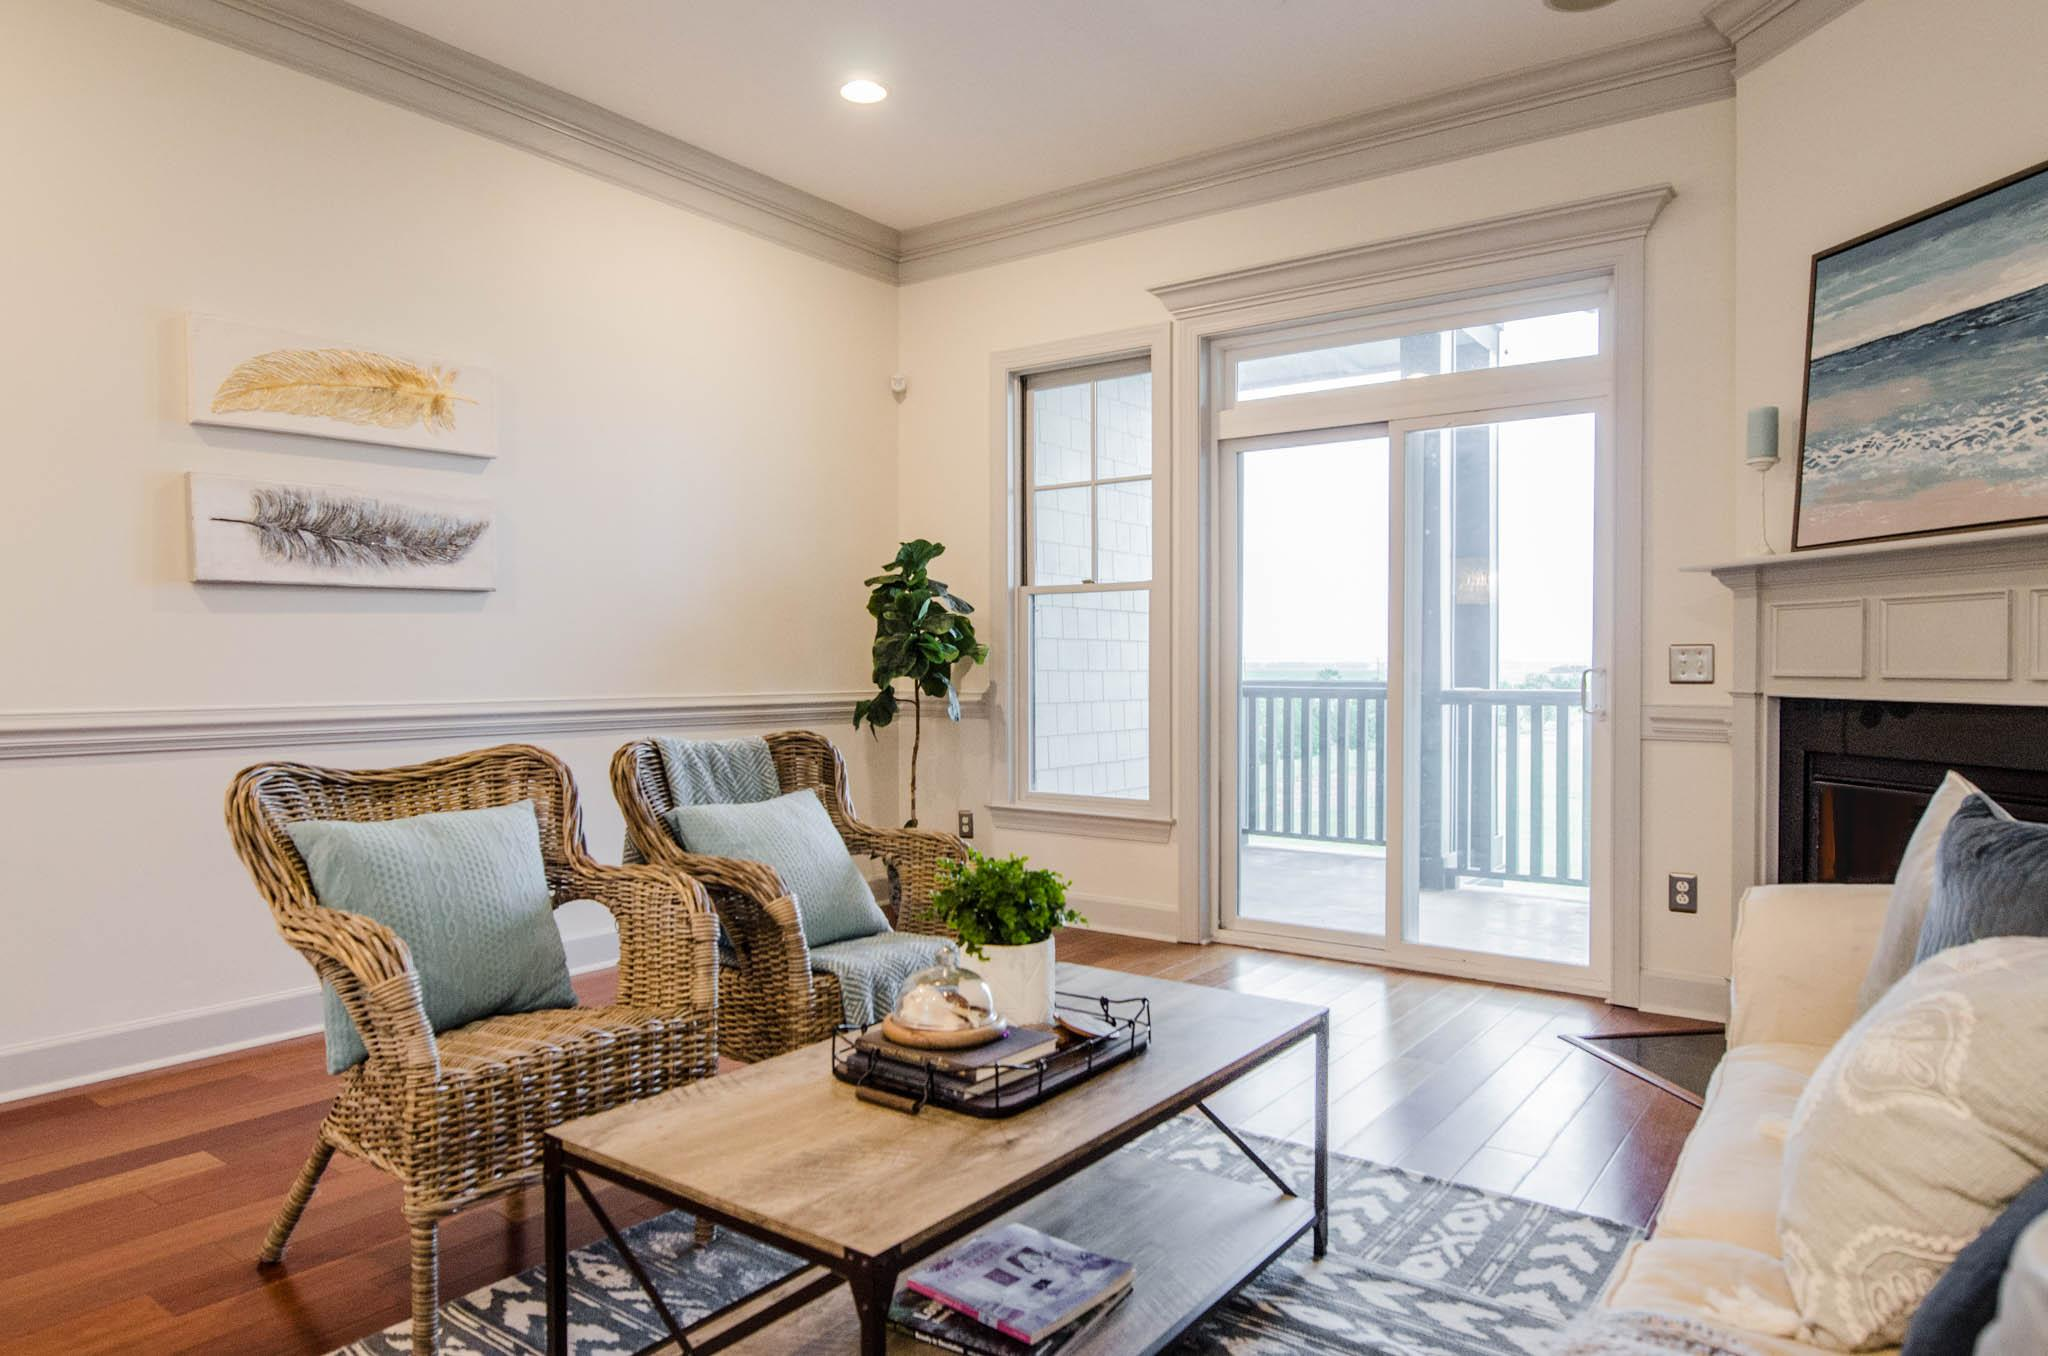 Sawyer's Landing Homes For Sale - 969 Cove Bay, Mount Pleasant, SC - 14